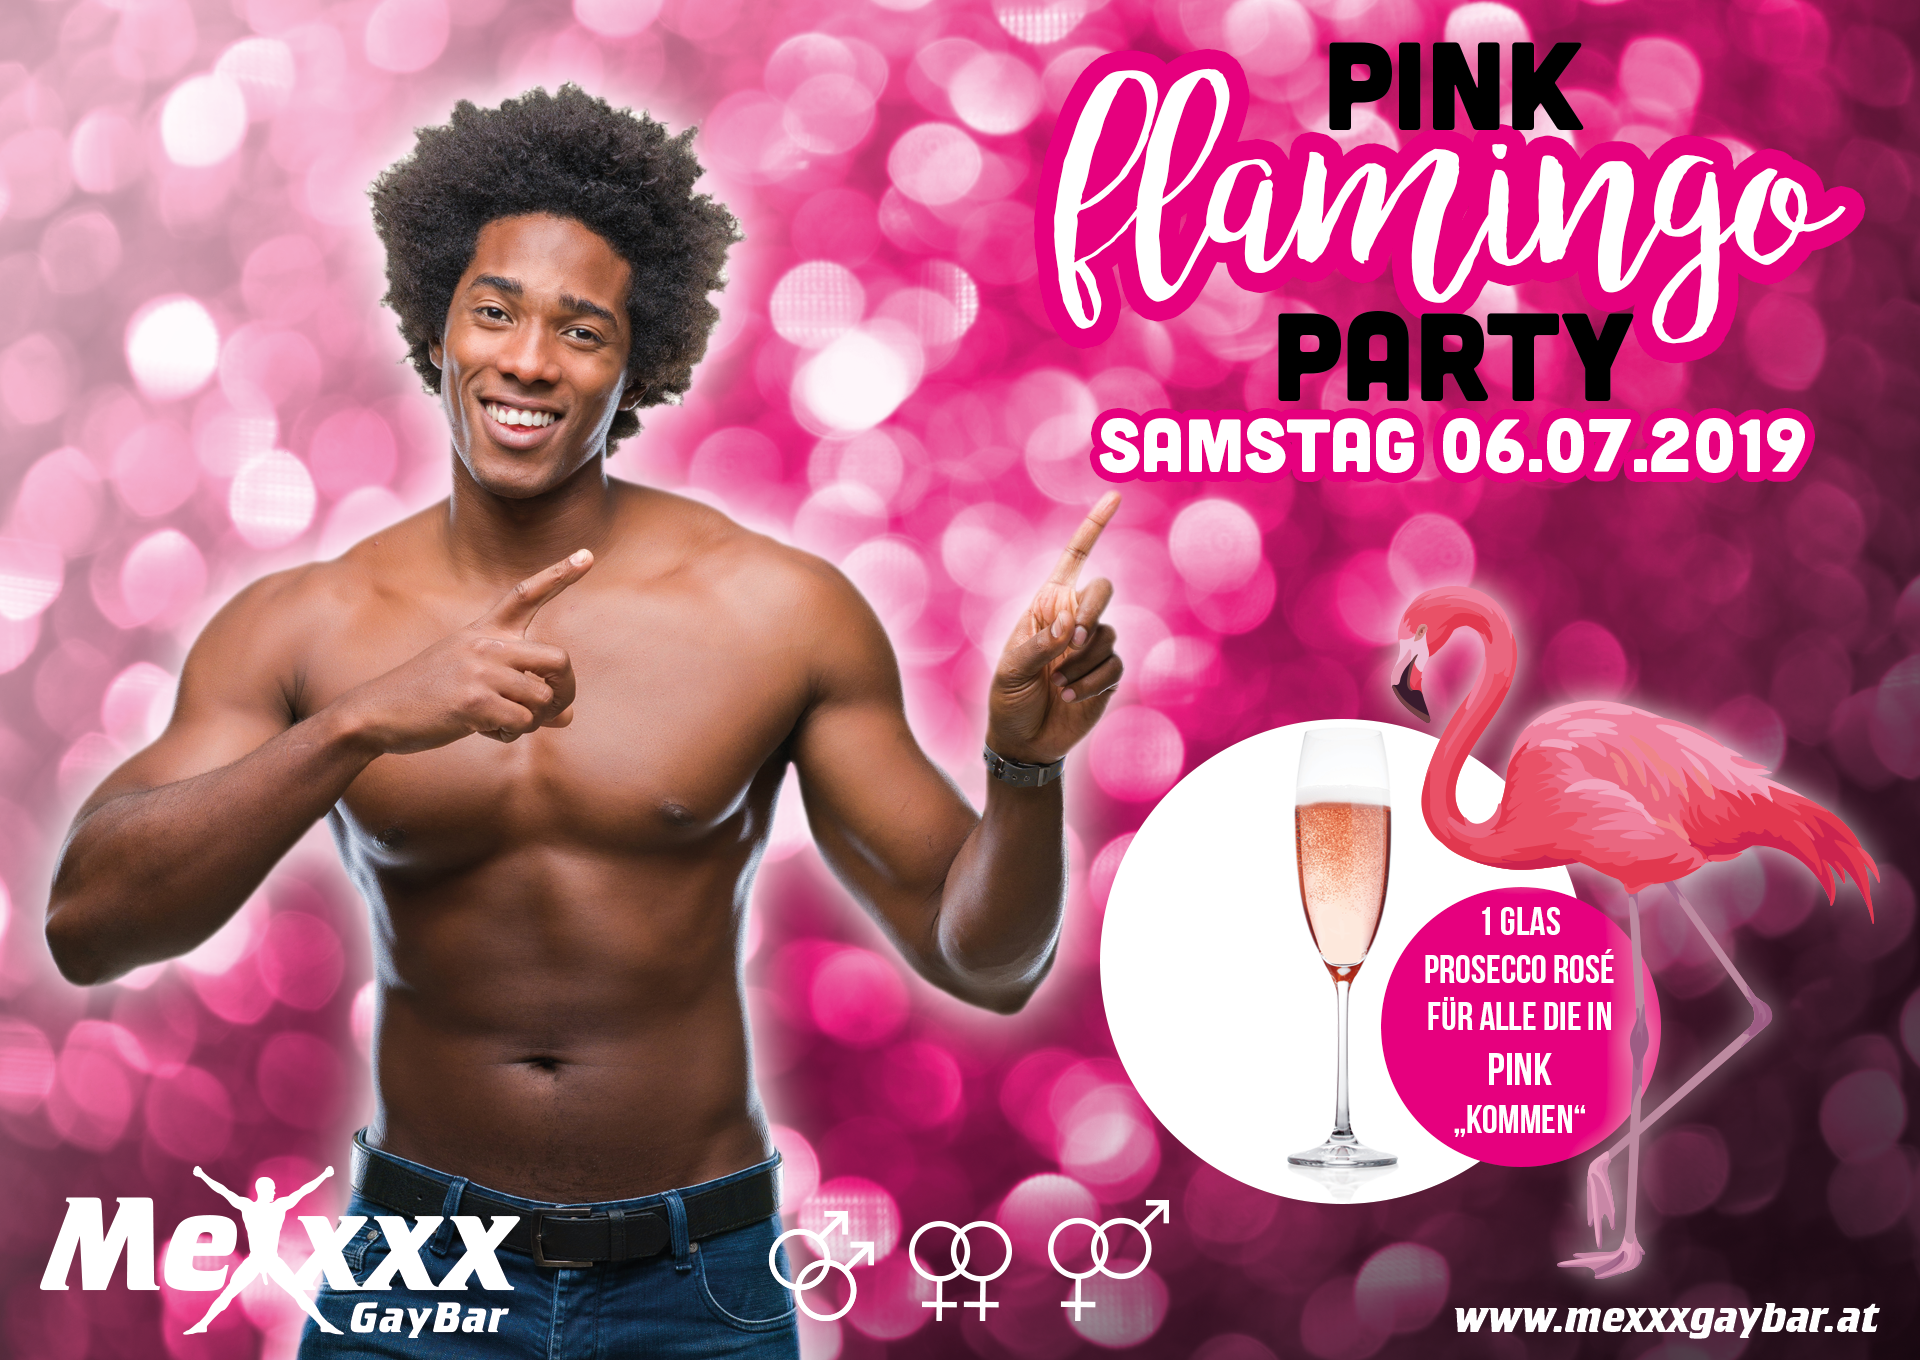 PINK flamingo PARTY 6. Juli 2019